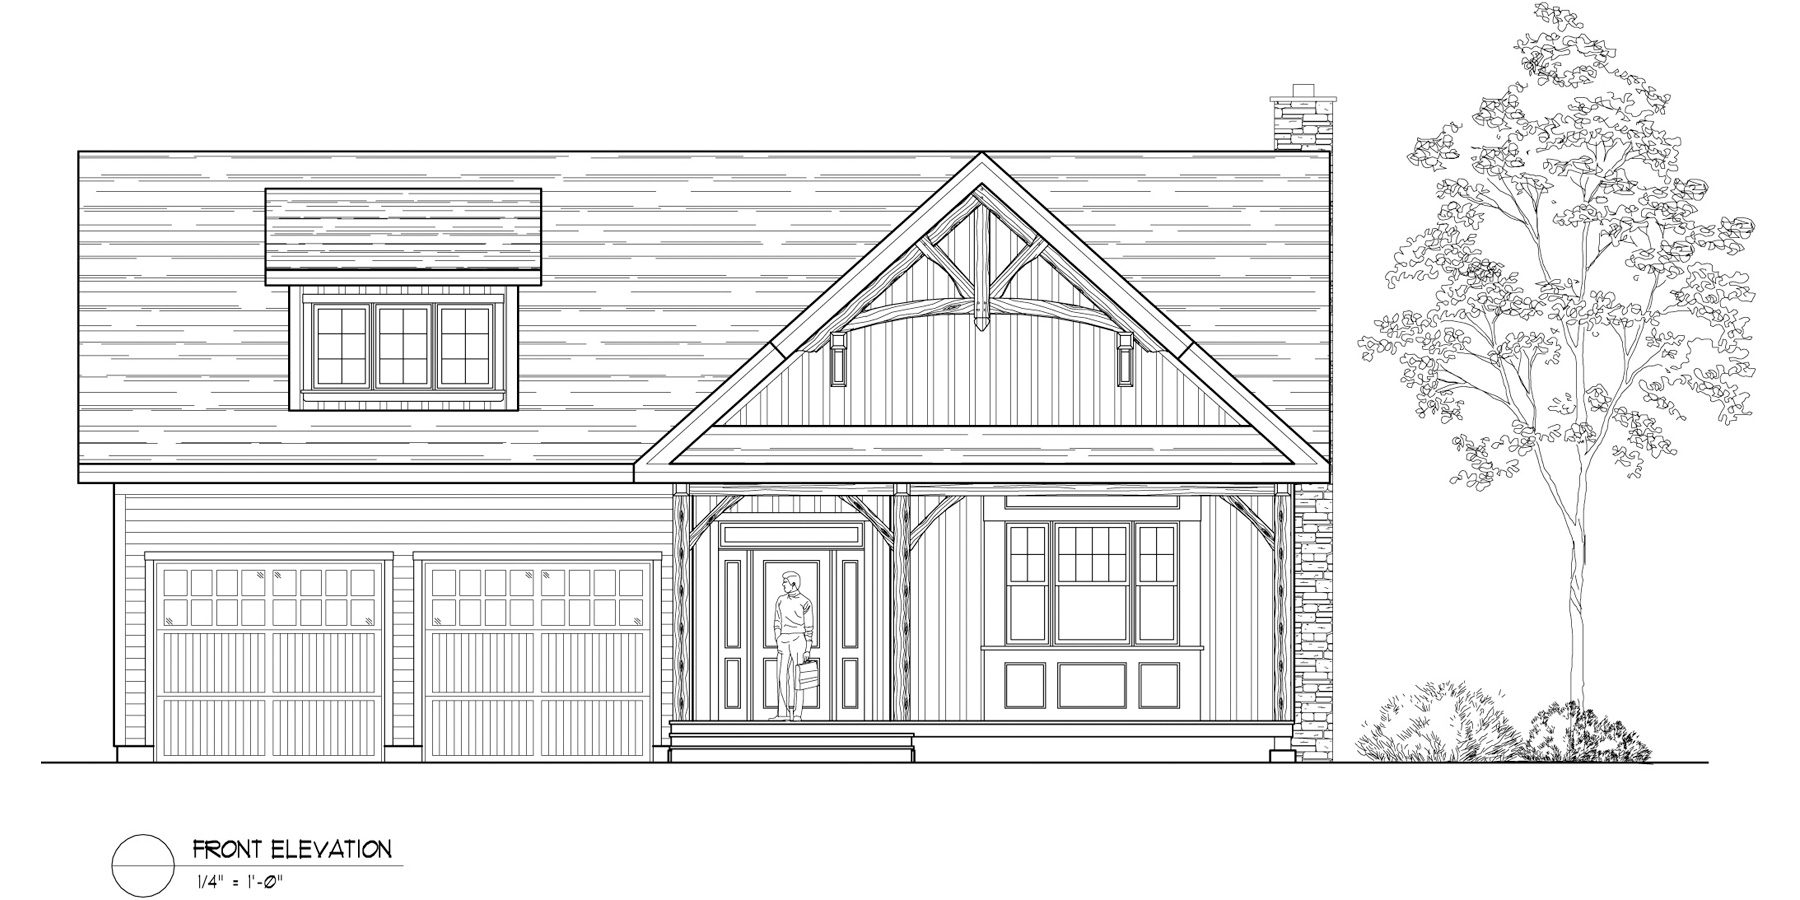 Normerica Timber Frames, House Plan, The Birches 3532, Front Elevation